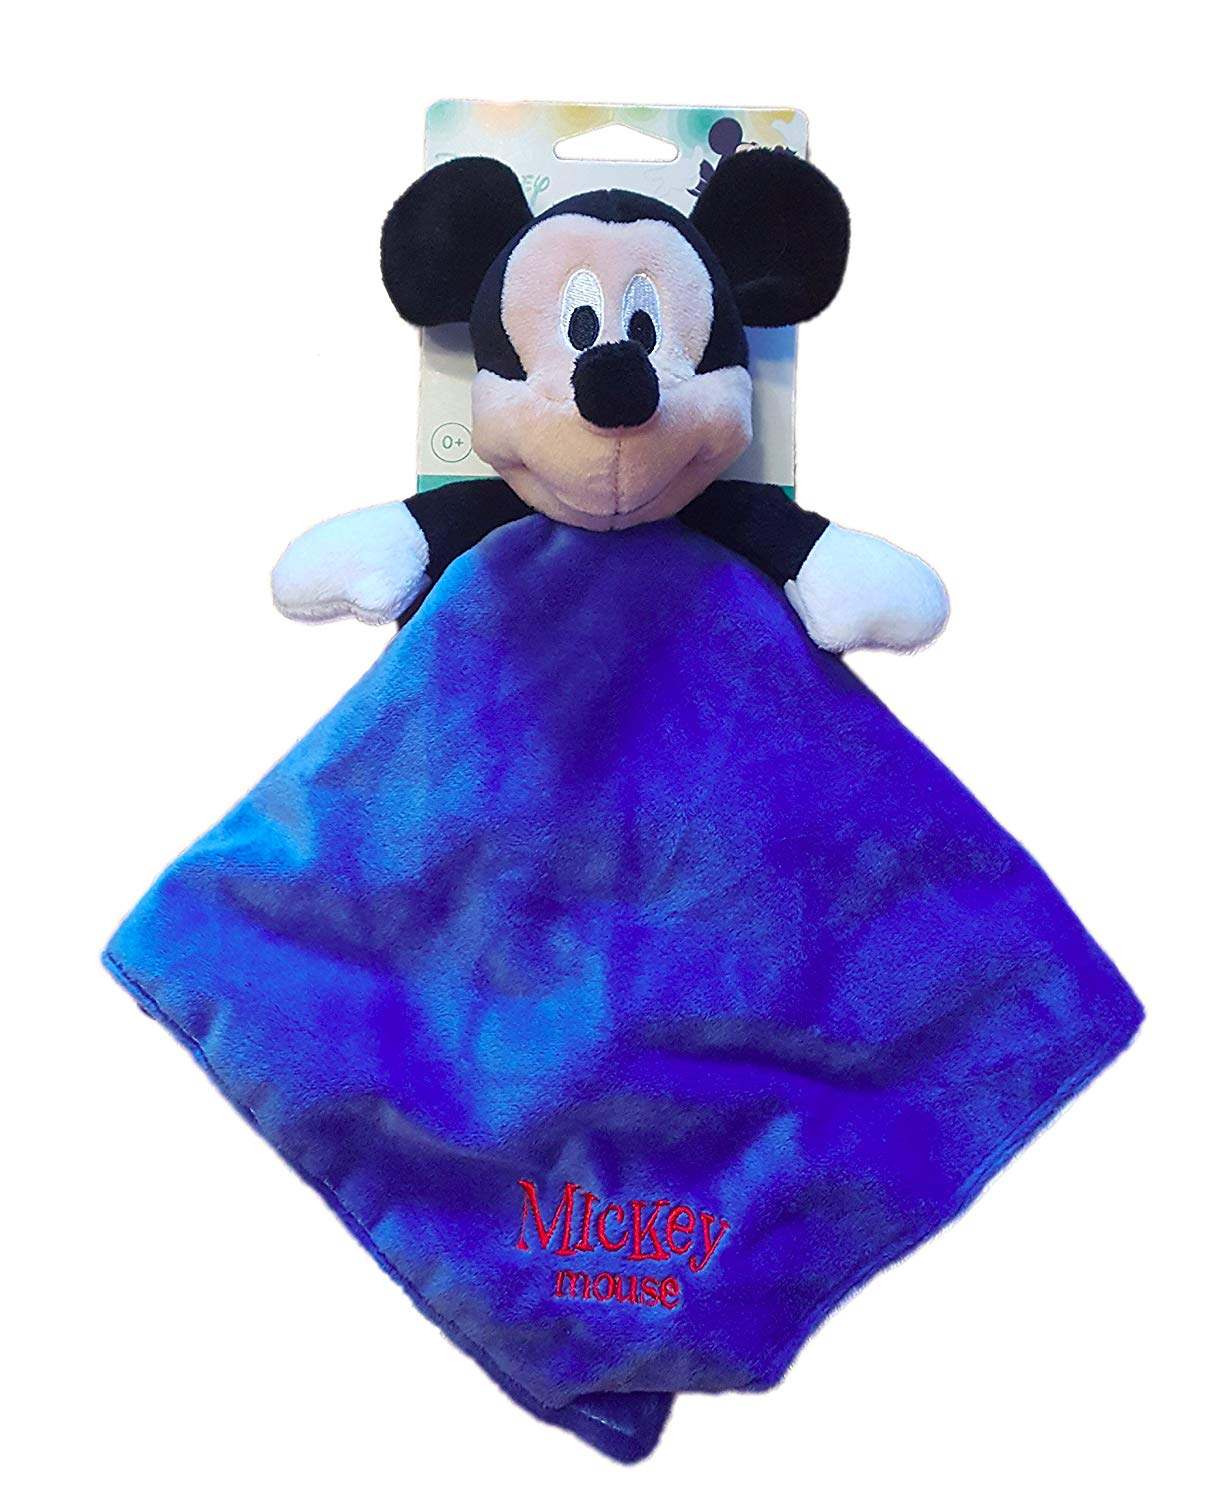 Disney Baby Infant Blue Unisex Mickey Mouse Security Blanket Lovey-baby shower gift, baby blanket, lovey, lovie, lovies, baby blankets